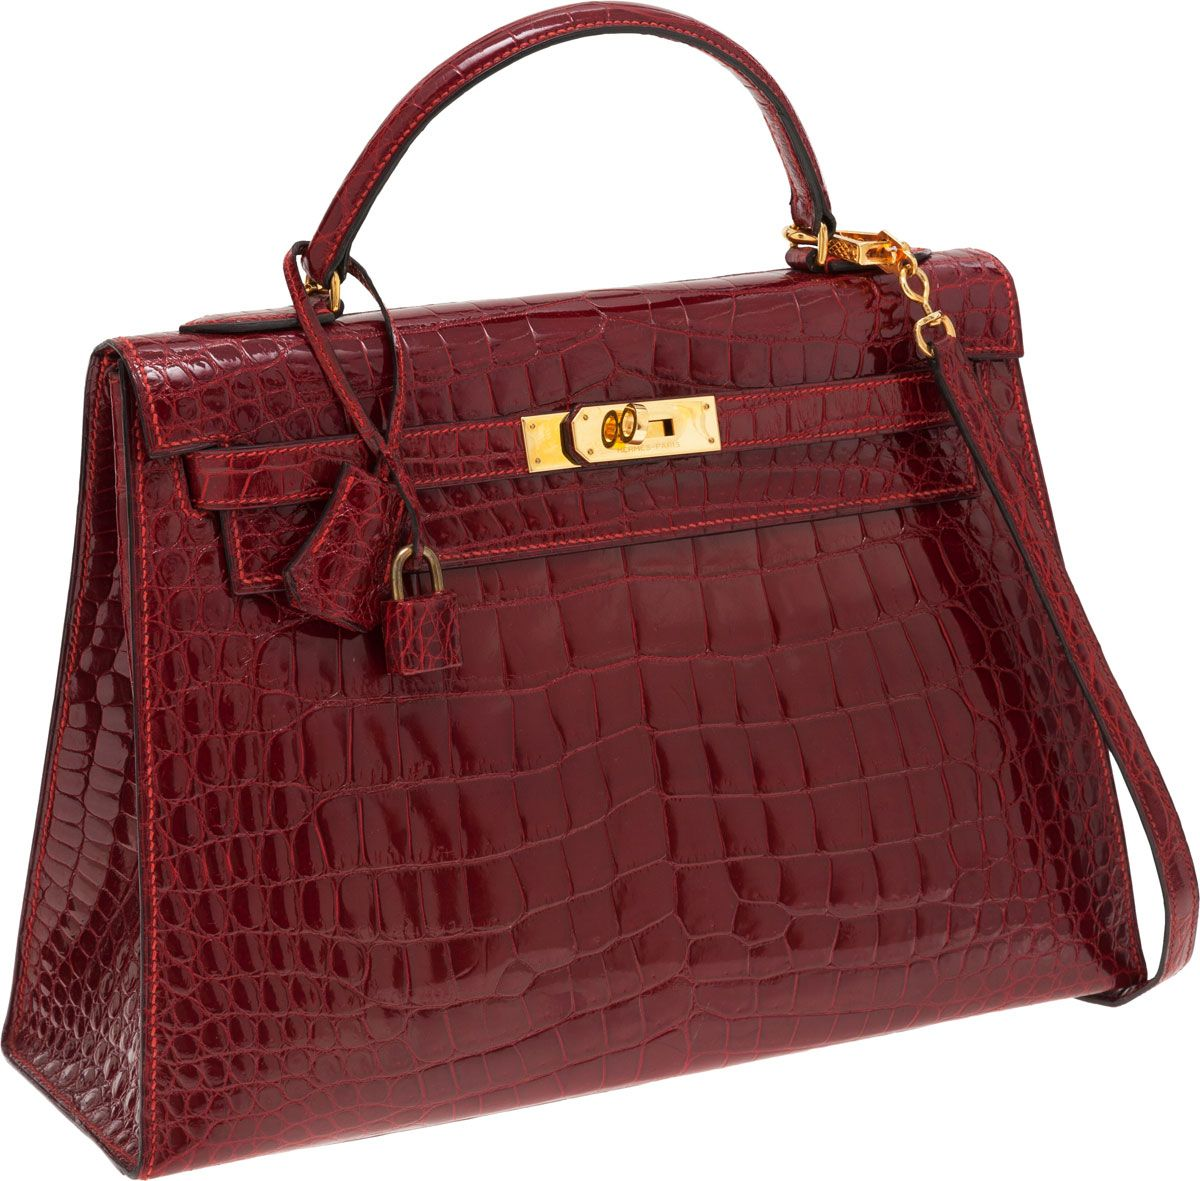 white birkin bag - most expensive hermes bags price